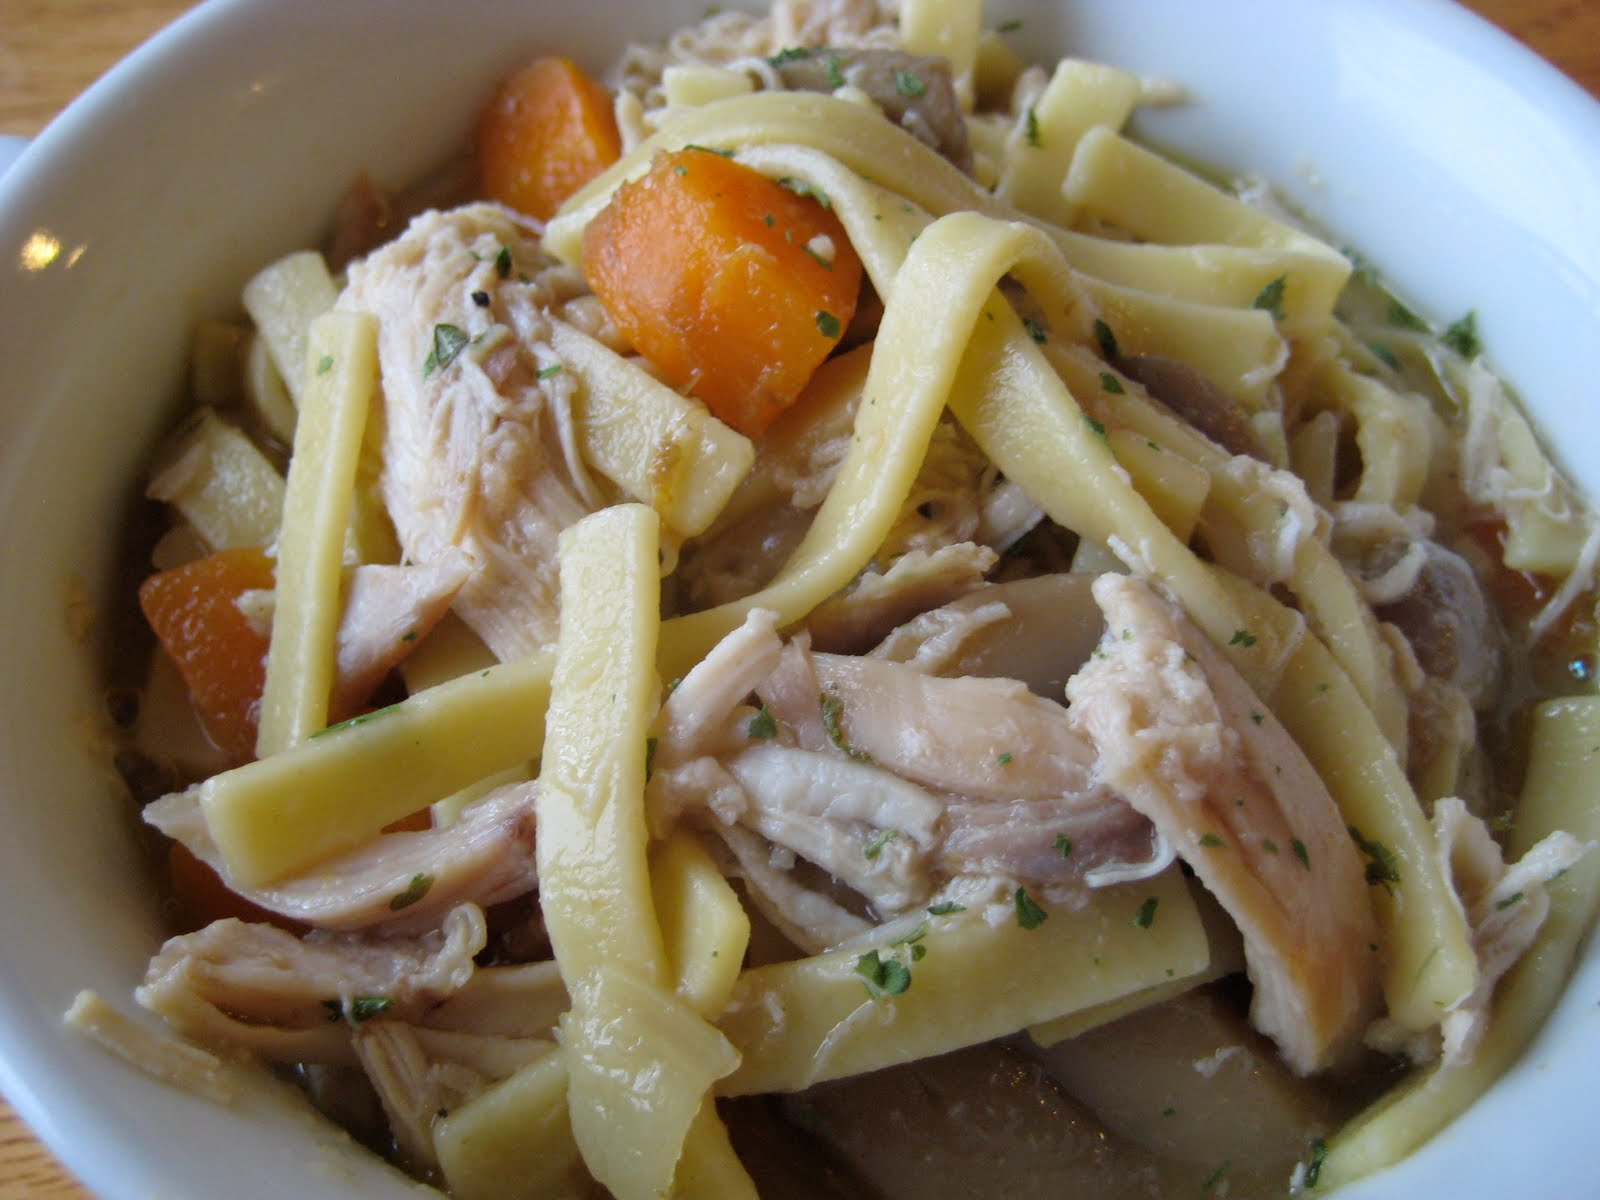 Joy in Cooking: Homemade Chicken and Noodles